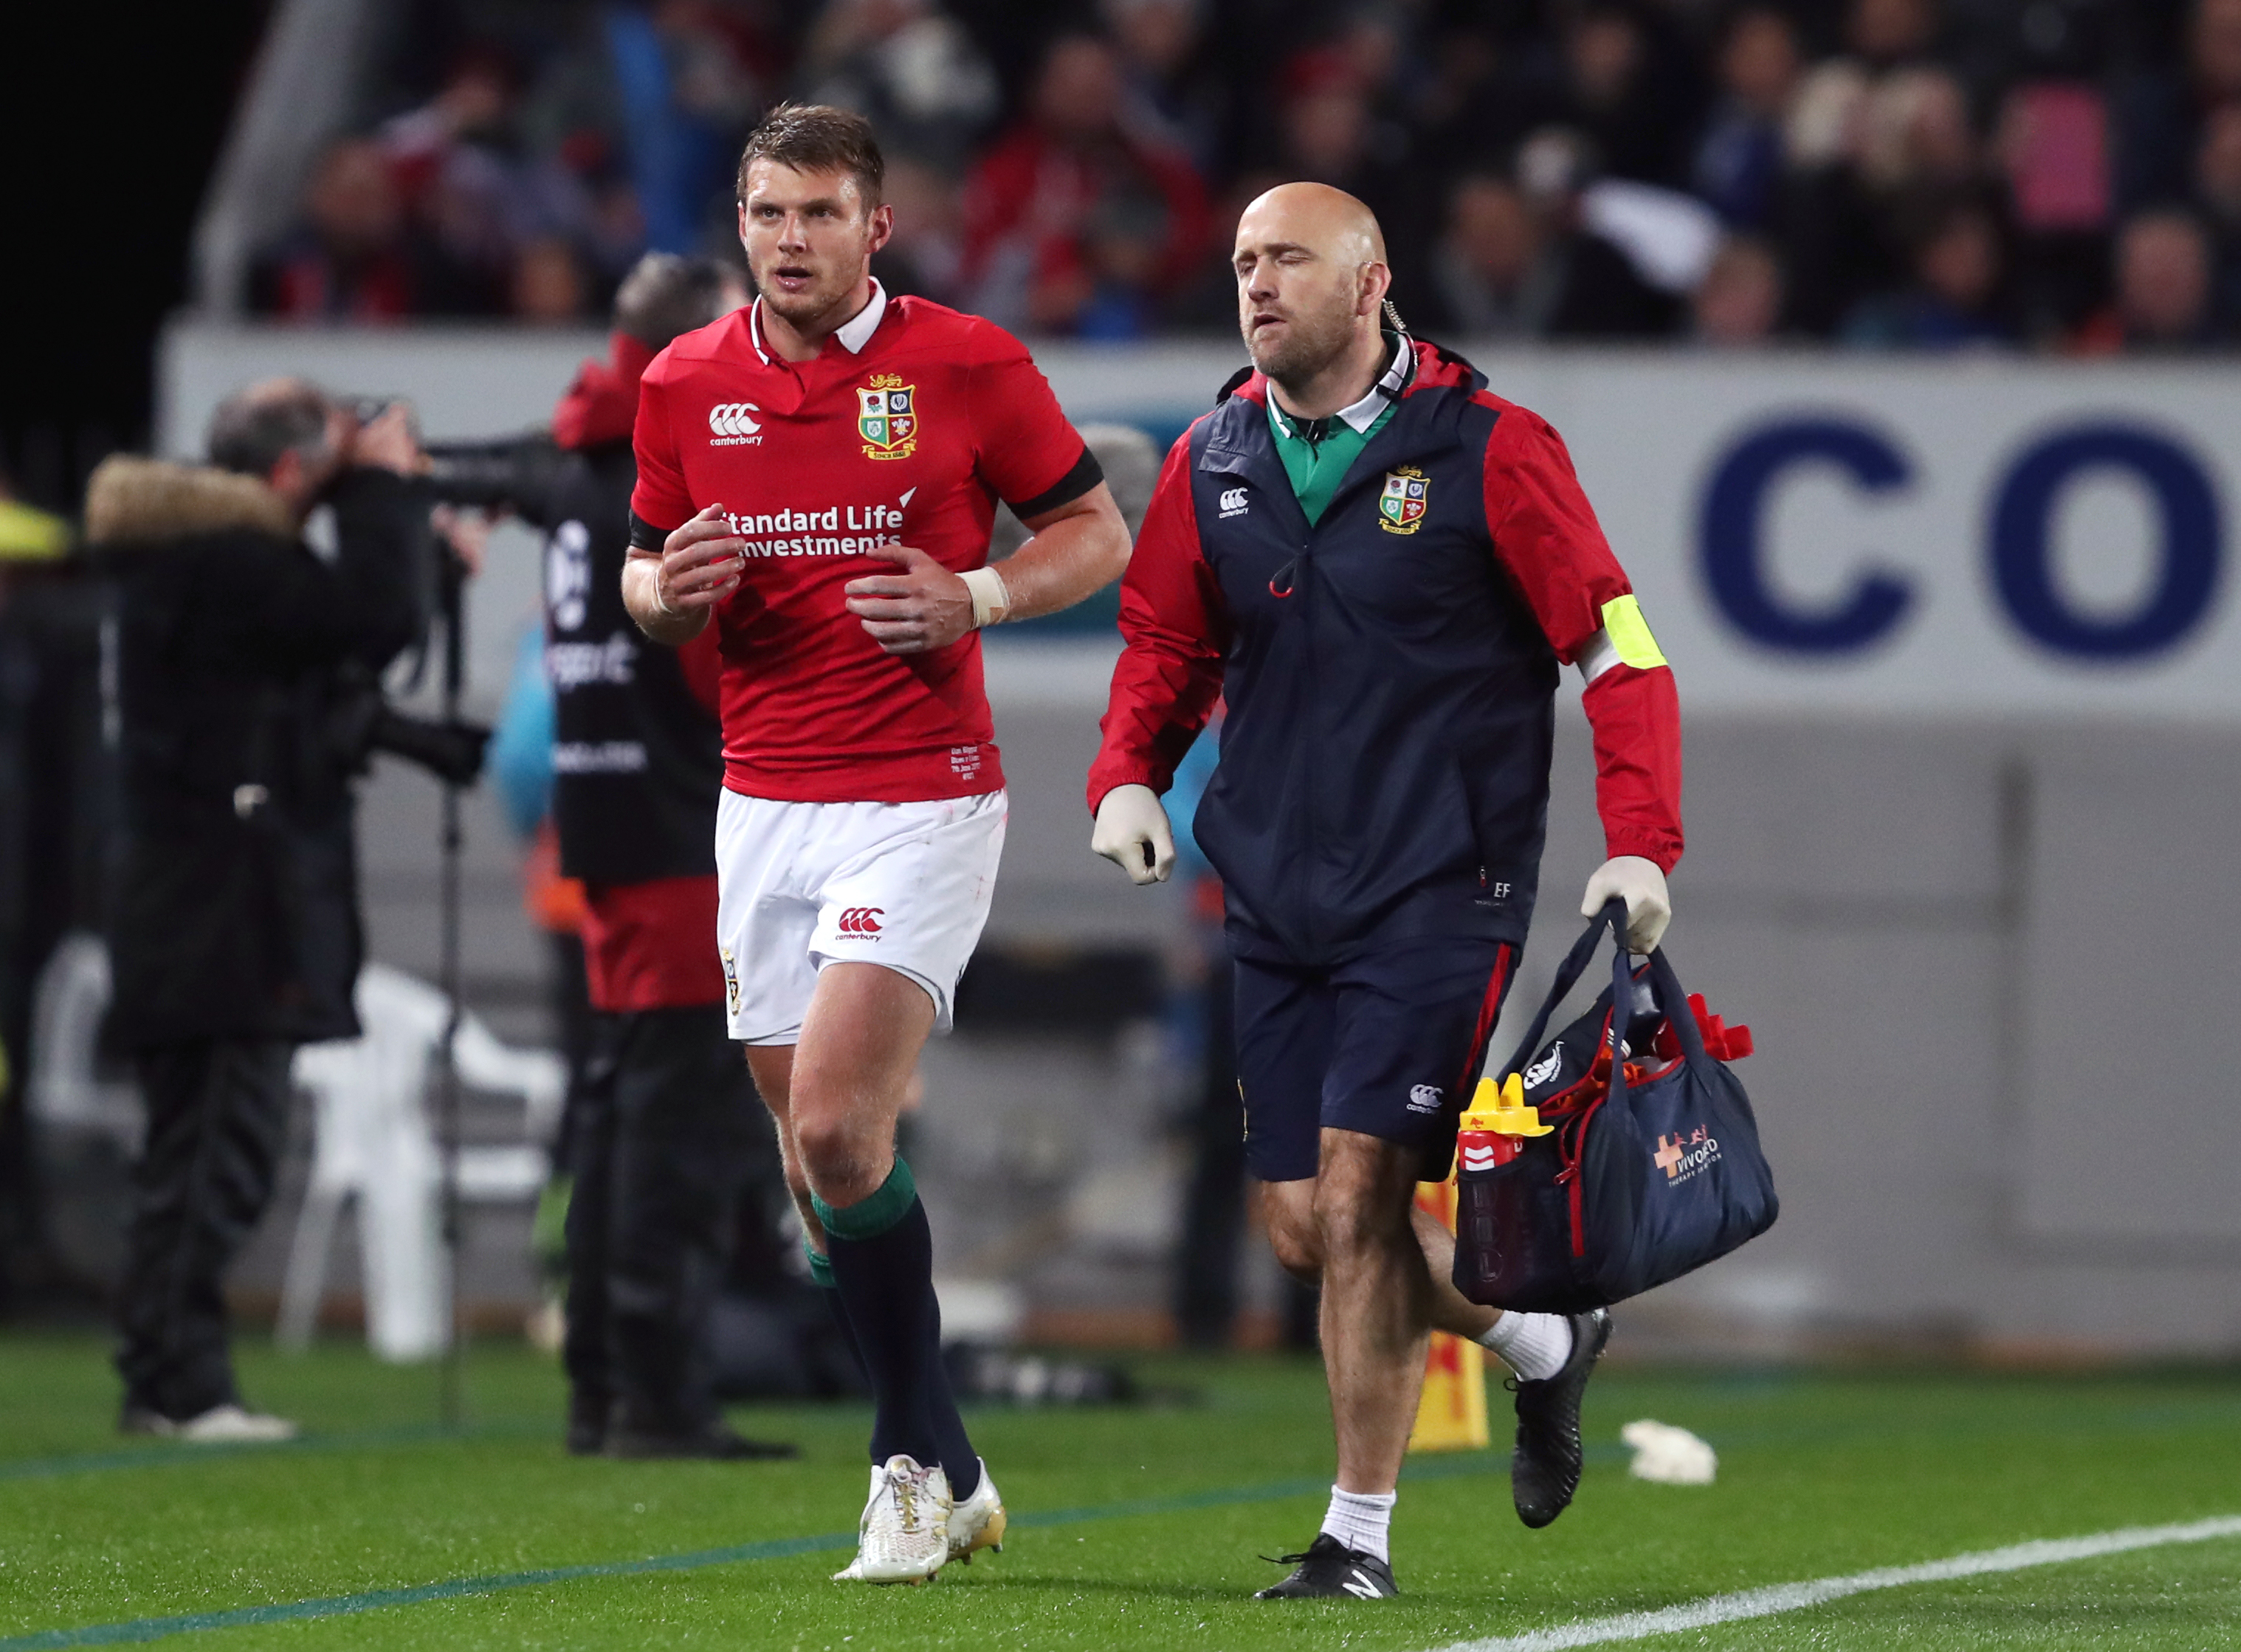 Dan Biggar goes for an HIA during the 2017 Lions Tour. Image: PA Images